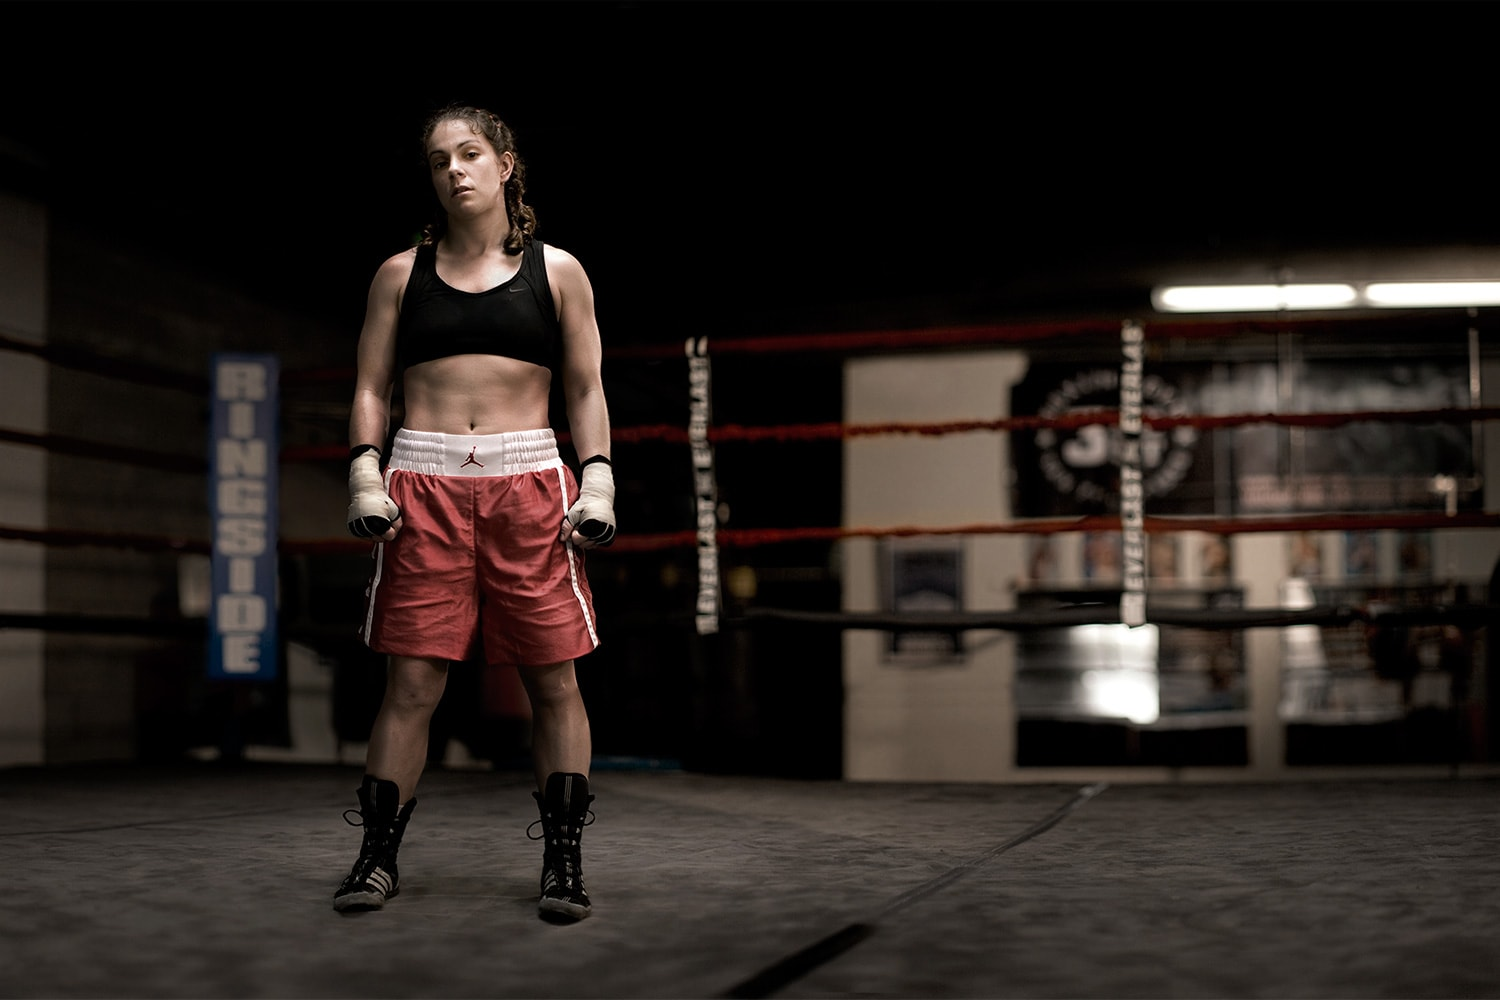 Athlete-female-boxer-standing-in-ring-Rod-McLean